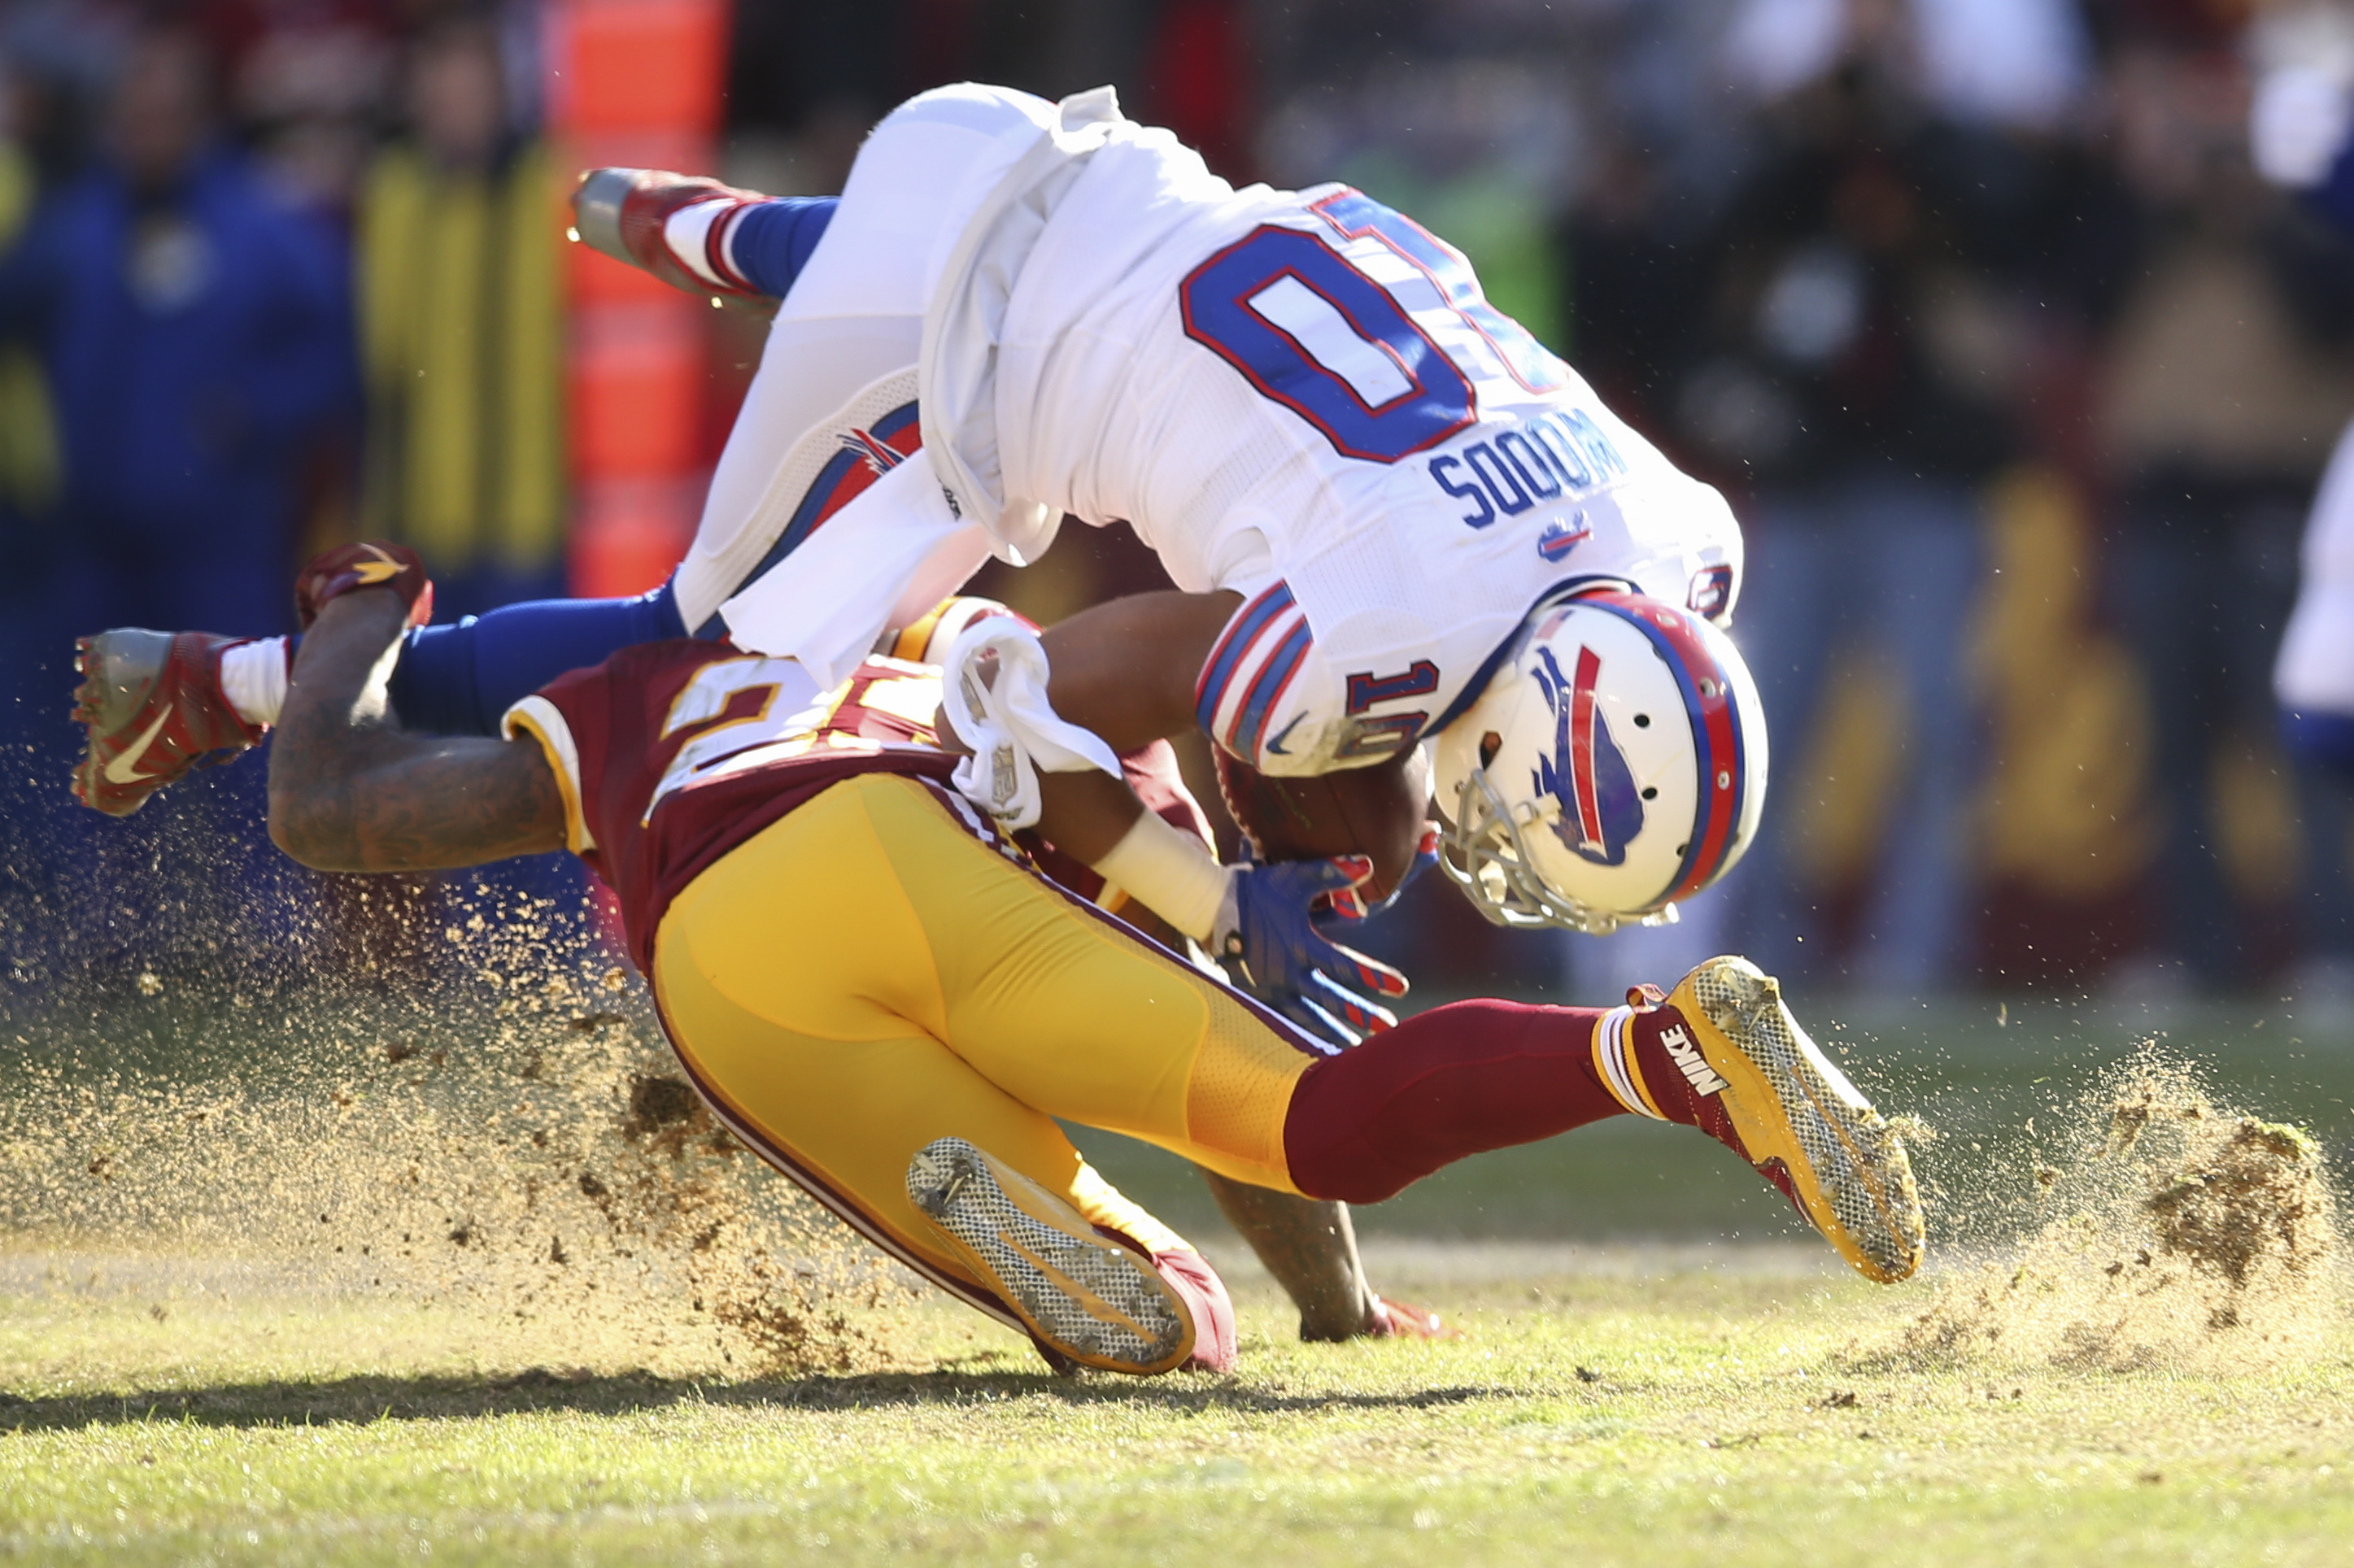 Buffalo Bills wide receiver Robert Woods (10) is upended by Washington Redskins defensive back DeAngelo Hall (23) during the first half of an NFL football game in Landover, Md., Sunday, Dec. 20, 2015. (AP Photo/Andrew Harnik)